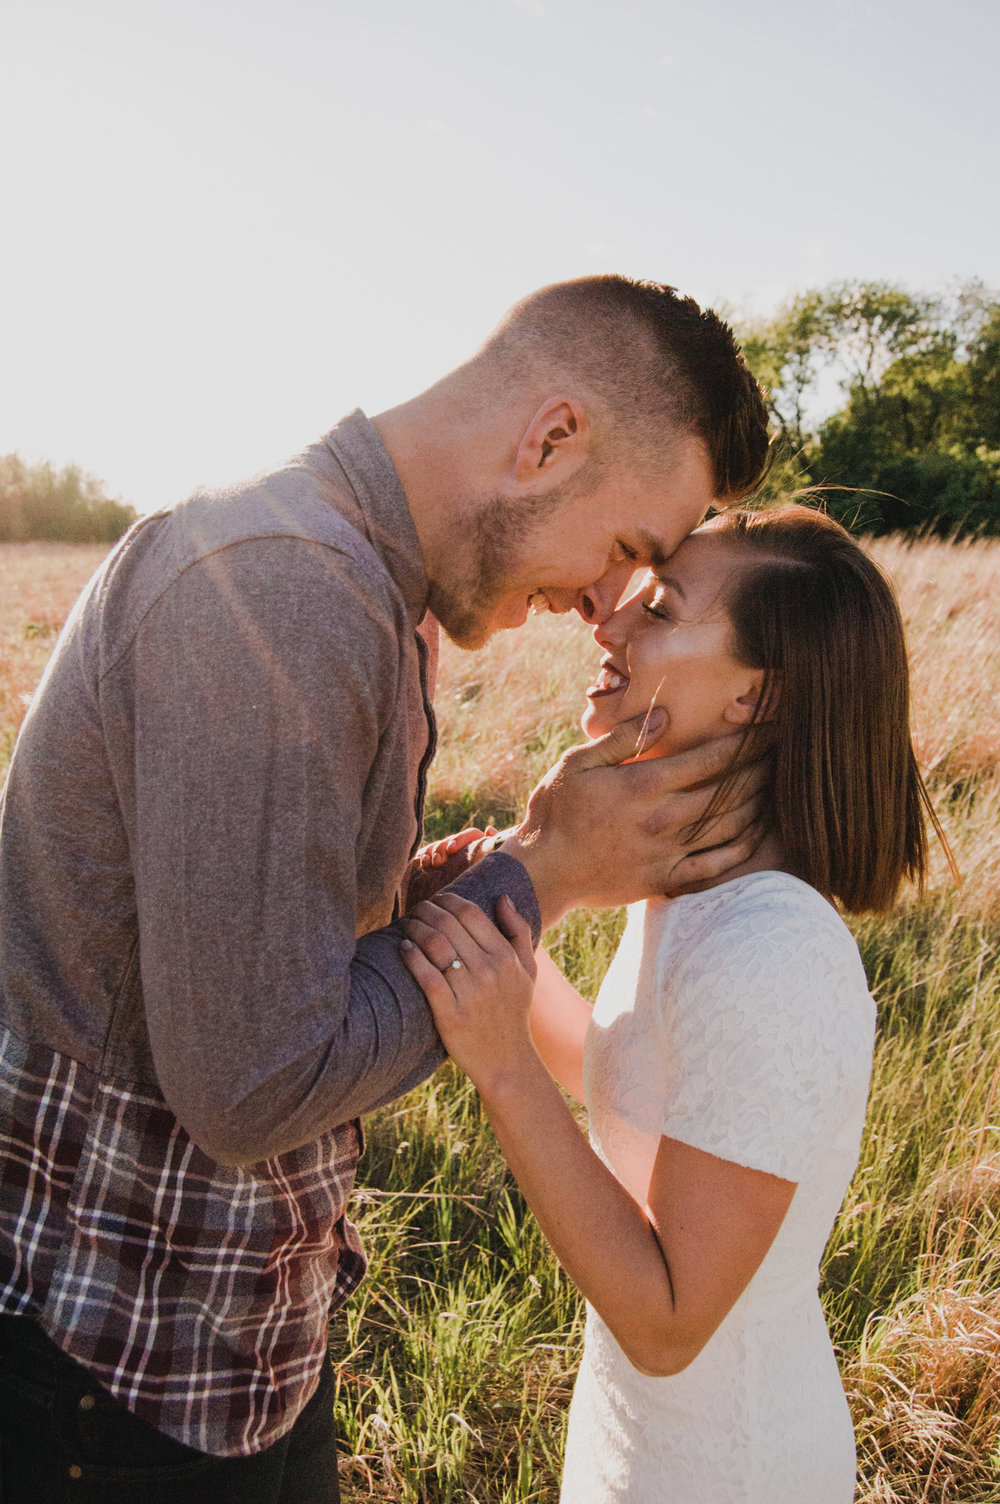 Engagement-Photography-Open-Field-along-Highway-Fort-Dodge-Iowa-embracing-holding-faces-romantic-in-field-at-sunset-iowa+engagement+photographer.jpg